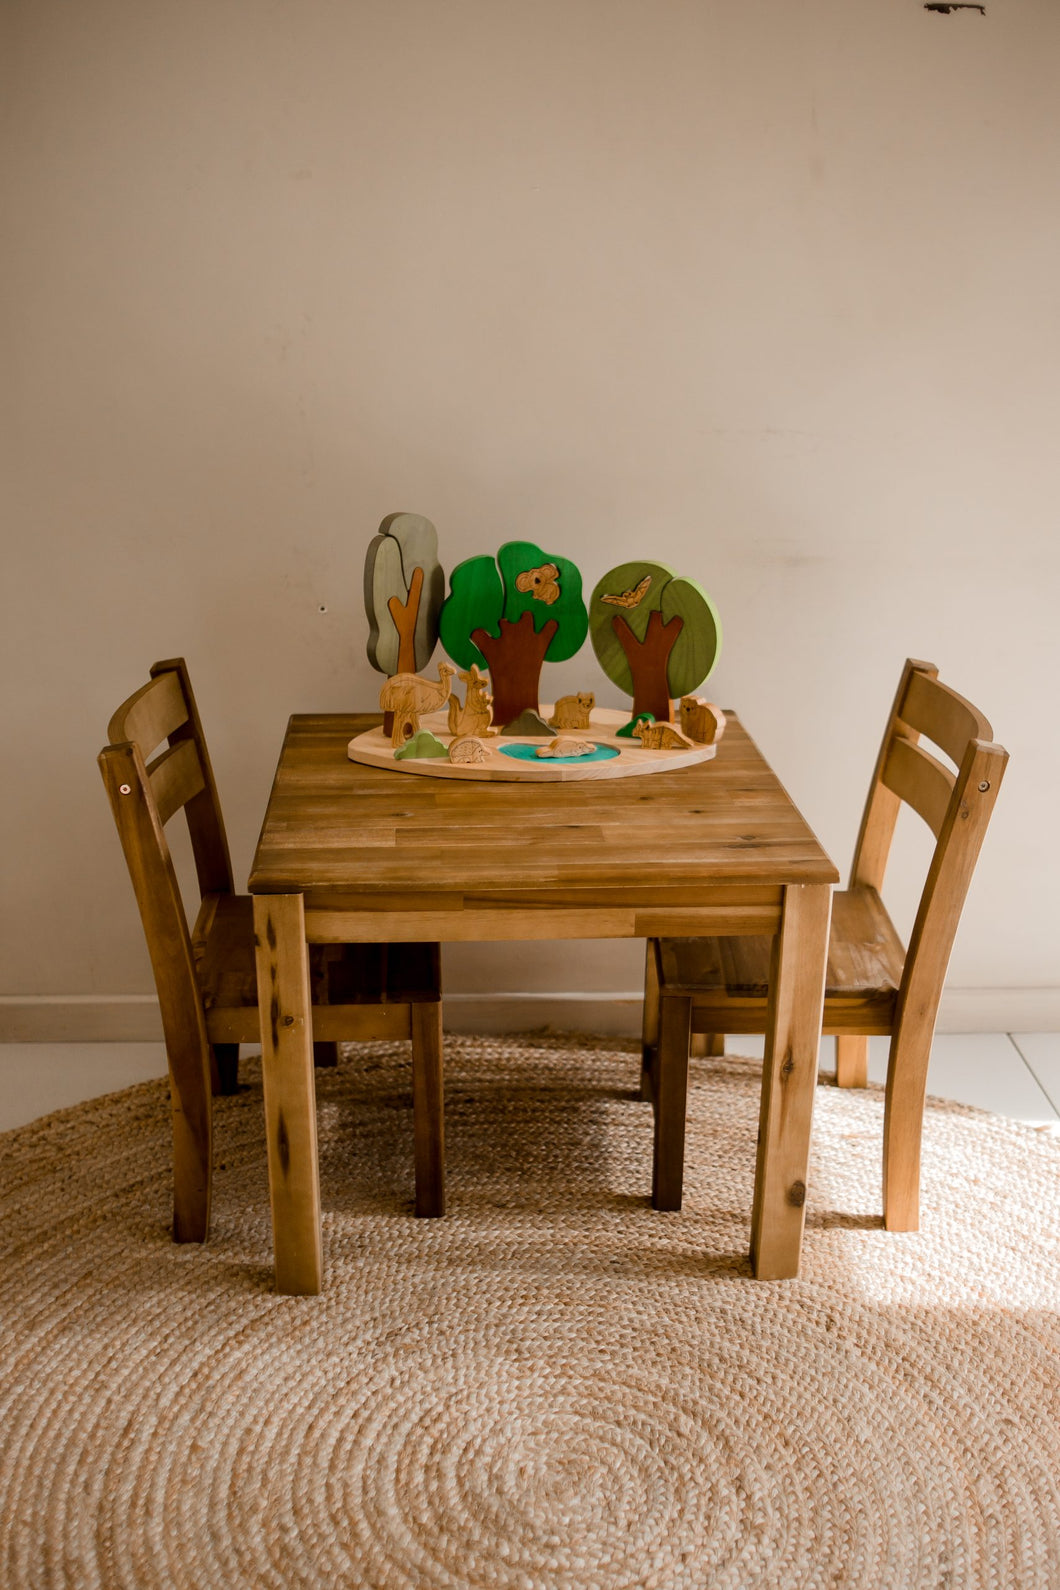 Hardwood Table with 2 Stacking Chairs